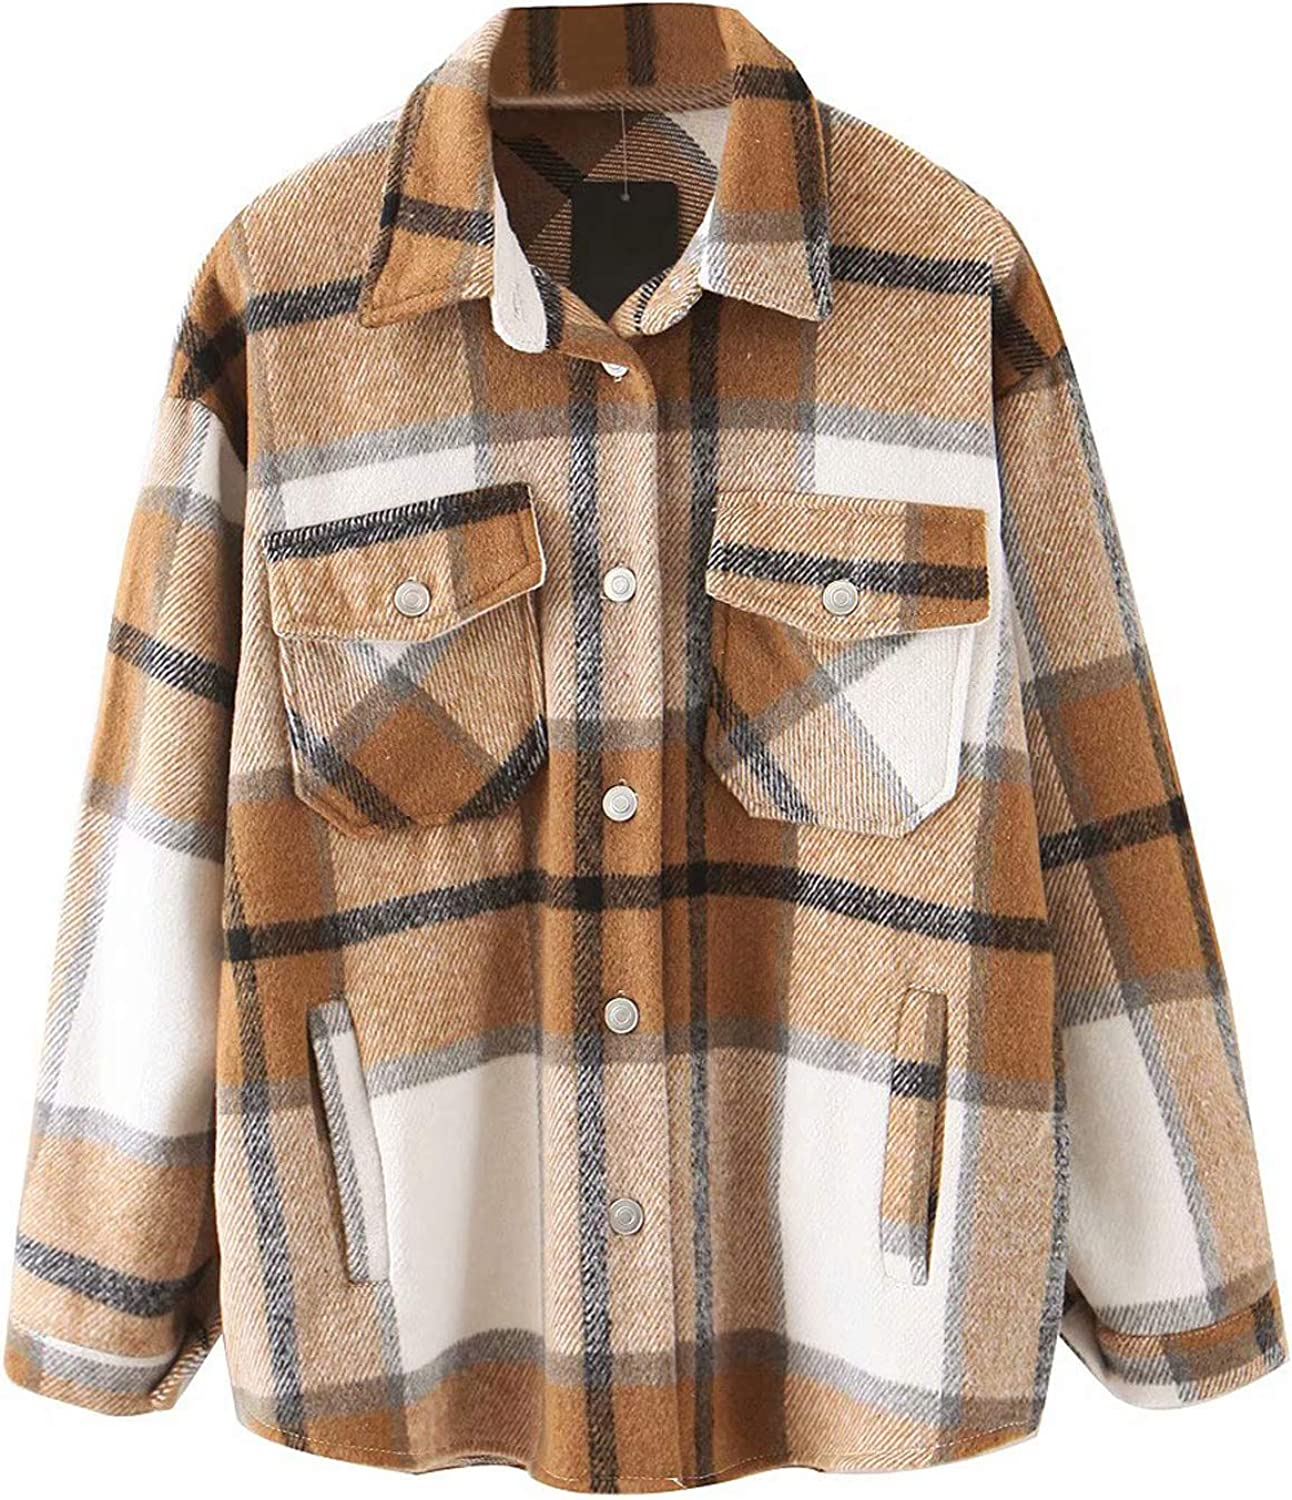 Women's Plaid Button Down Jacket Casual Wool Blend Long Sleeve Loose Lapel Coat Winter Outwear with Pockets